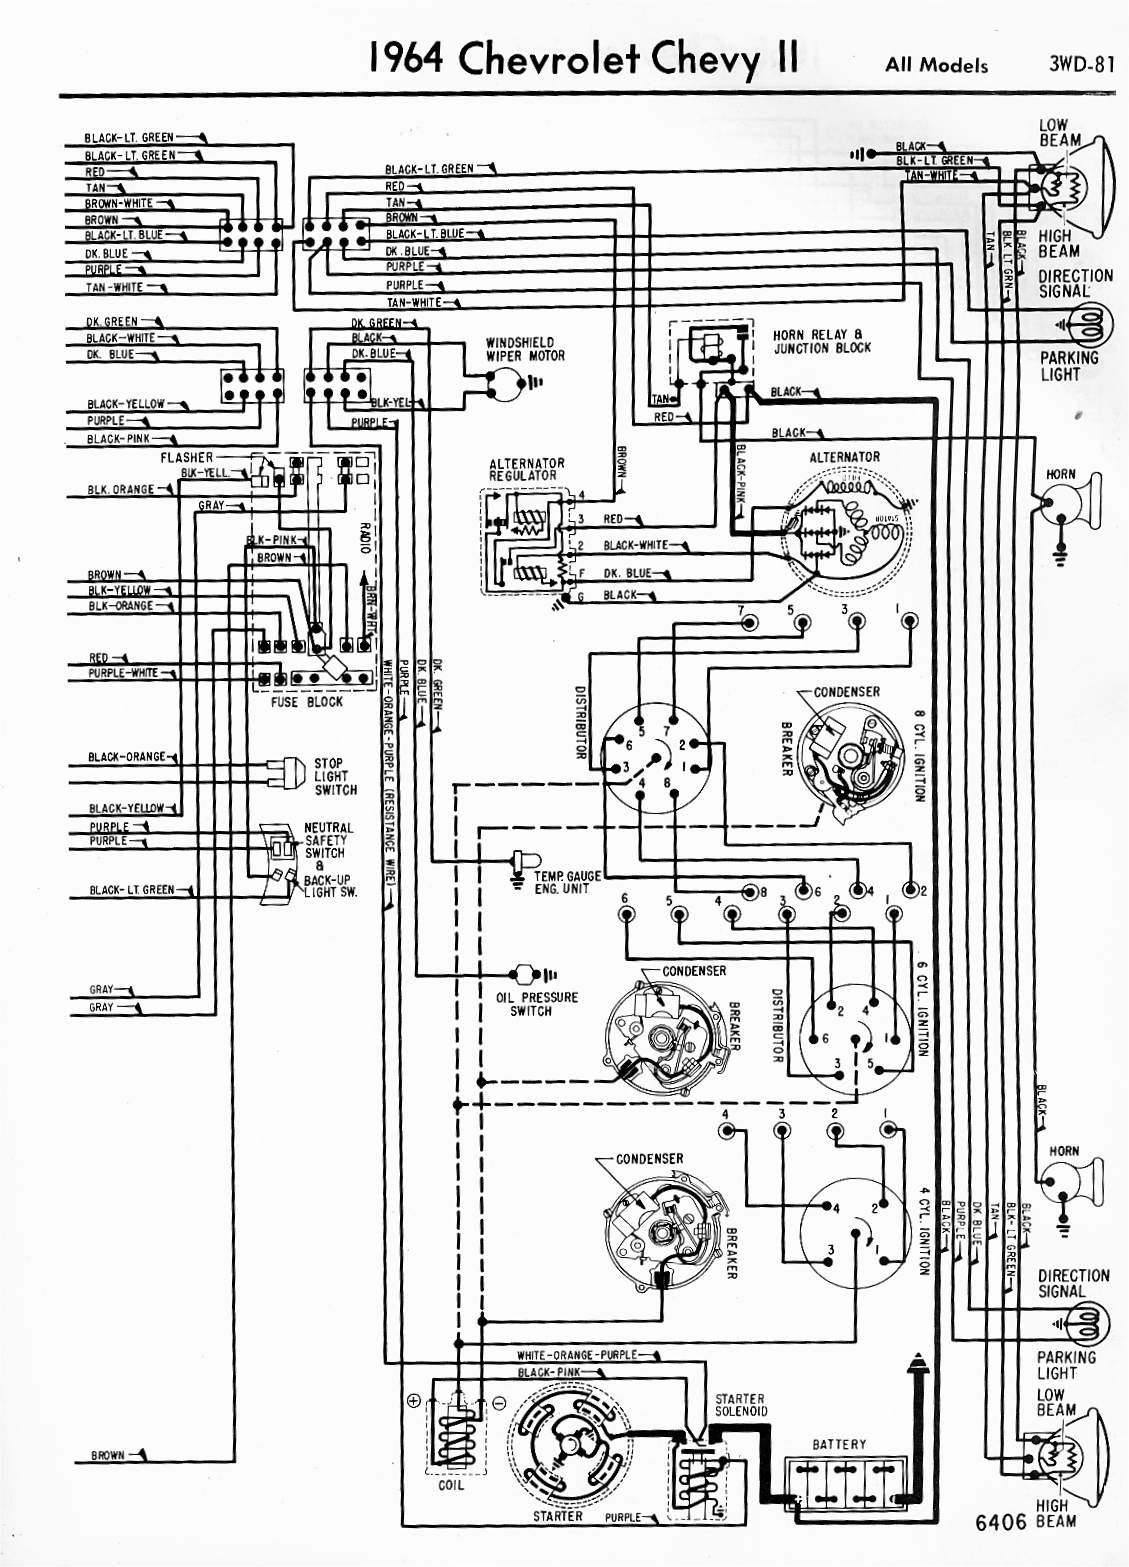 1966 C10 Stepside Wiring Diagram - Wiring Library